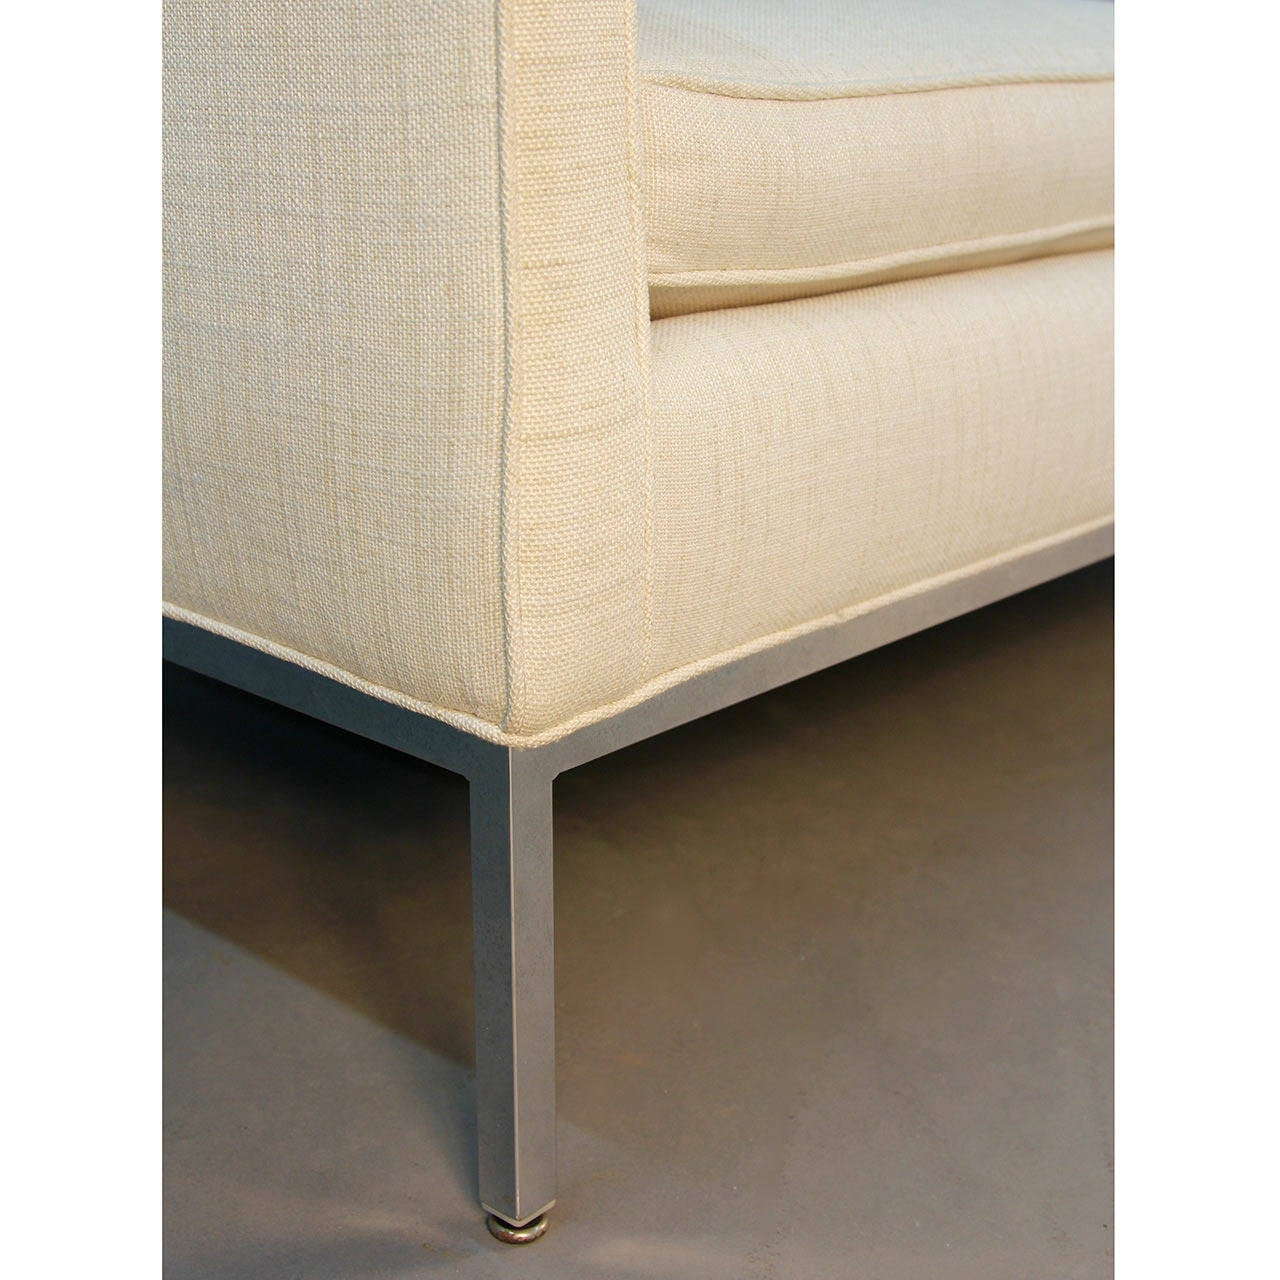 Mid-20th Century Milo Baughman for Thayer Coggin Signed Chrome and Linen Loveseat Sofa For Sale